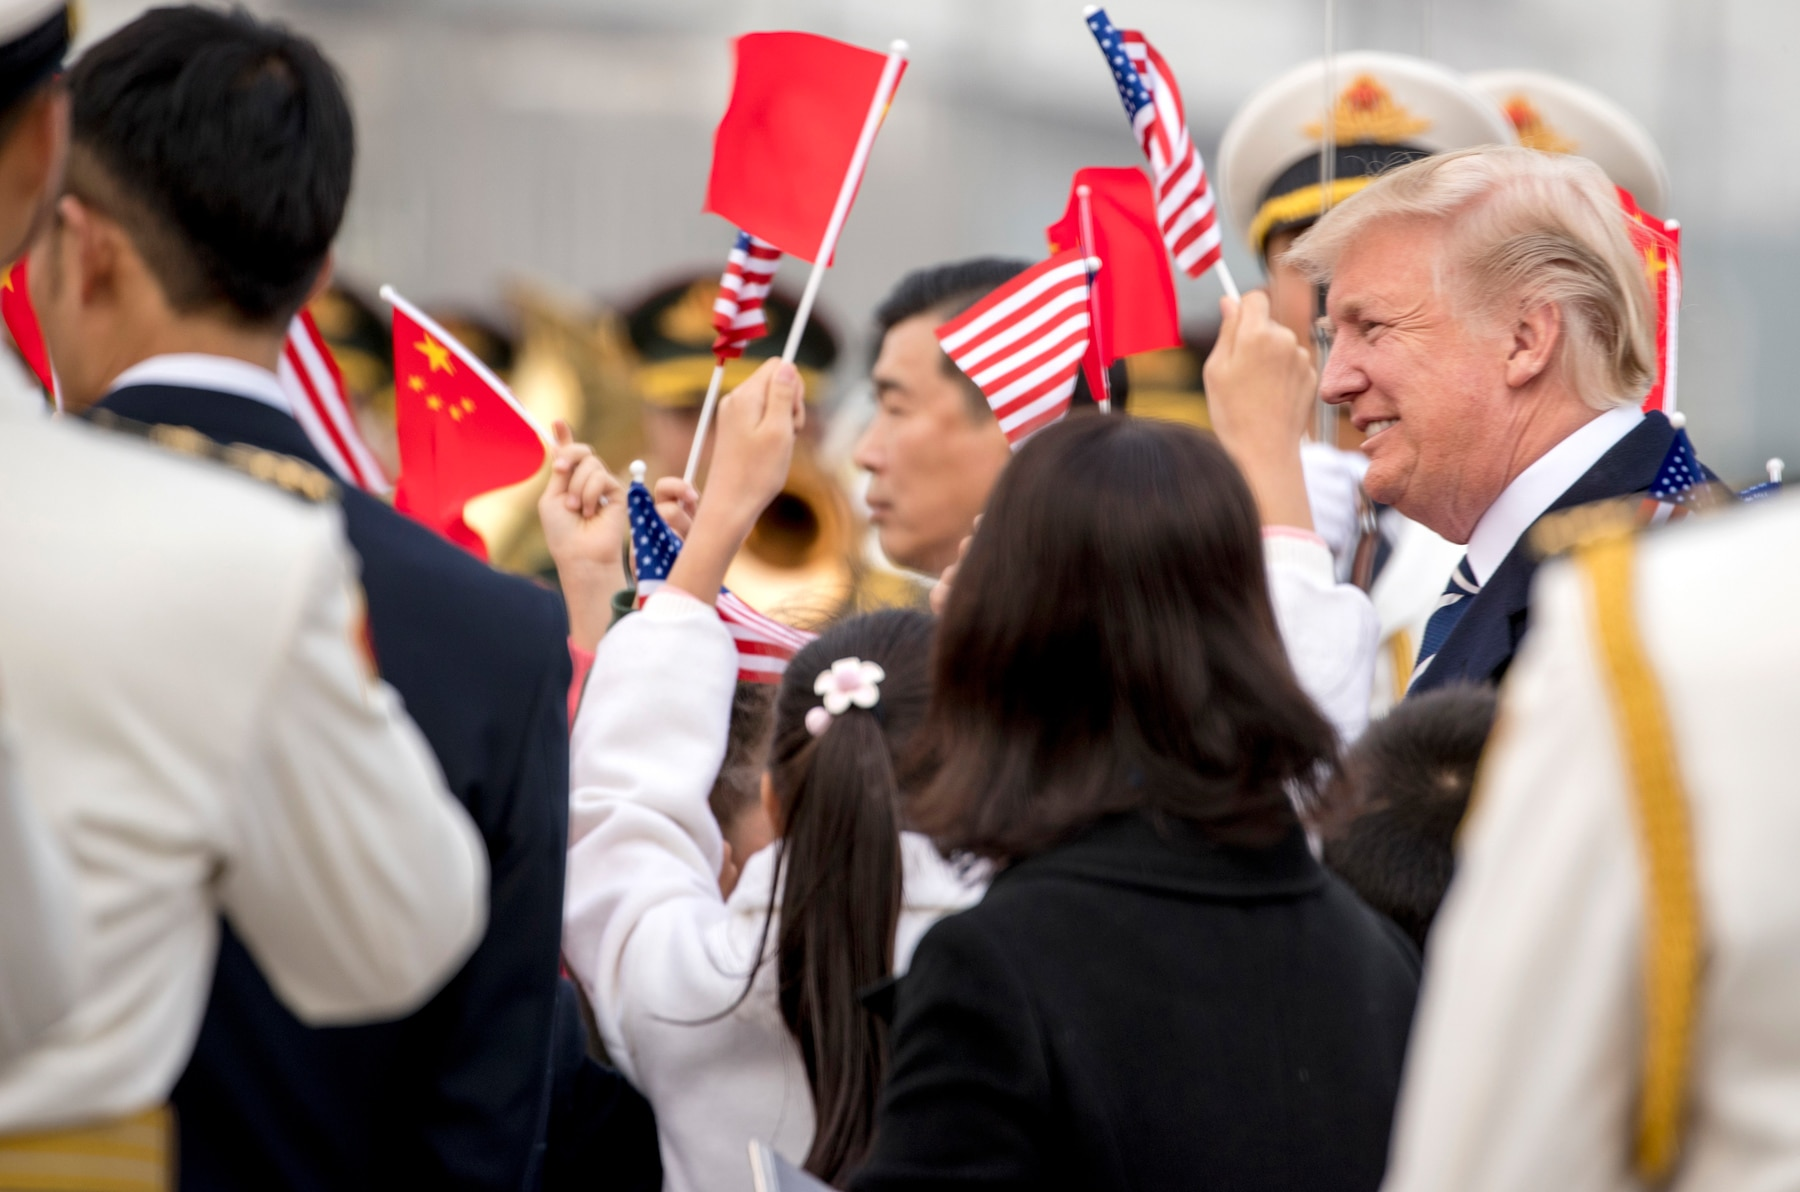 Children waving U.S. and Chinese flags (© AP Images)